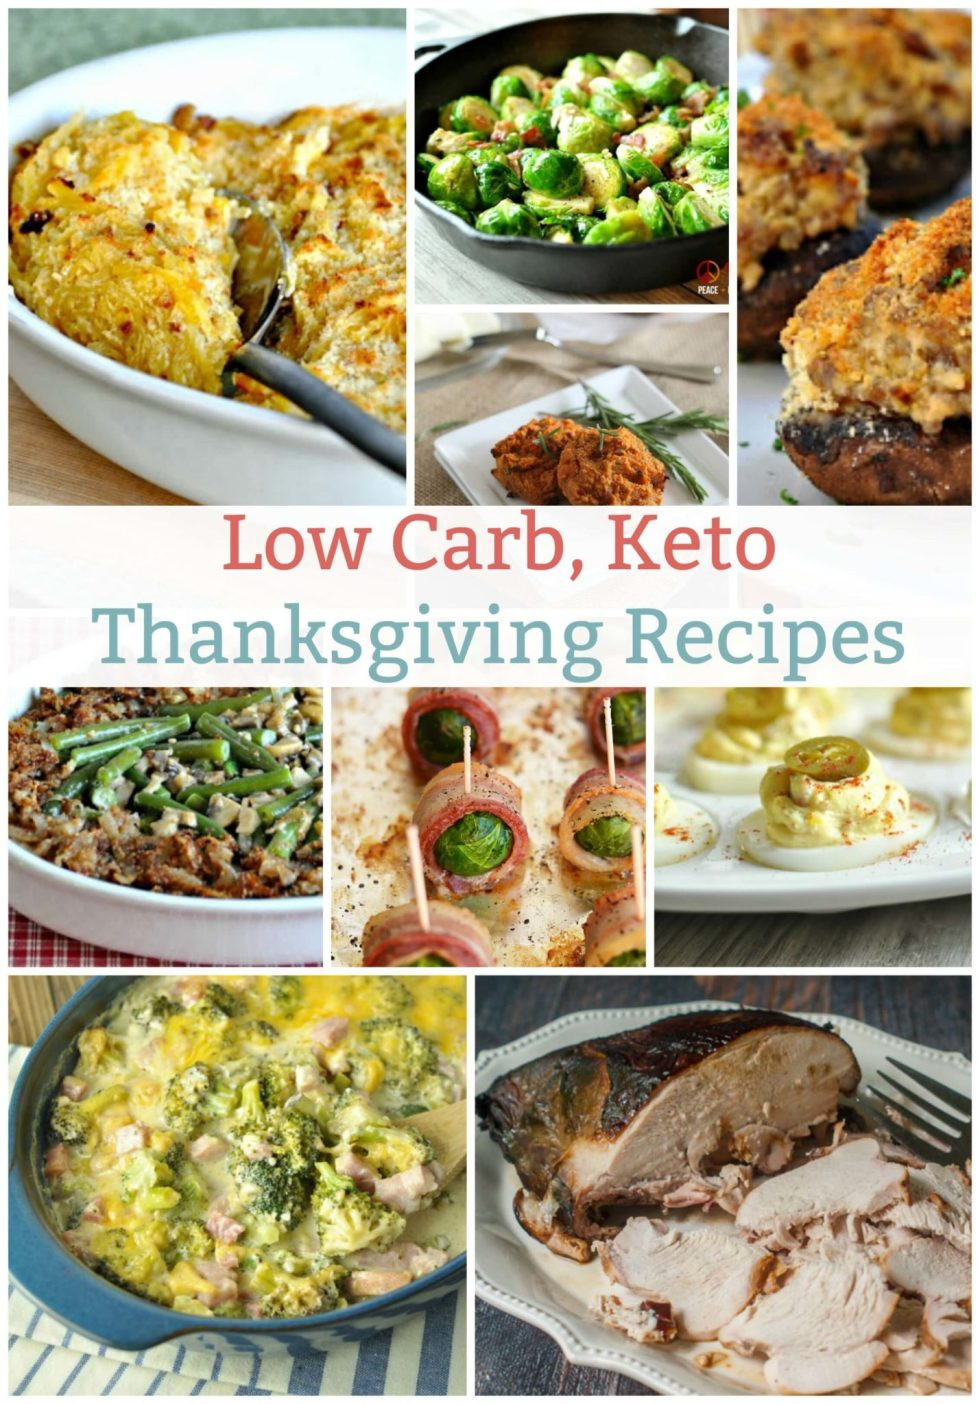 Low Carb Thanksgiving Recipes  Low Carb Keto Thanksgiving Recipes